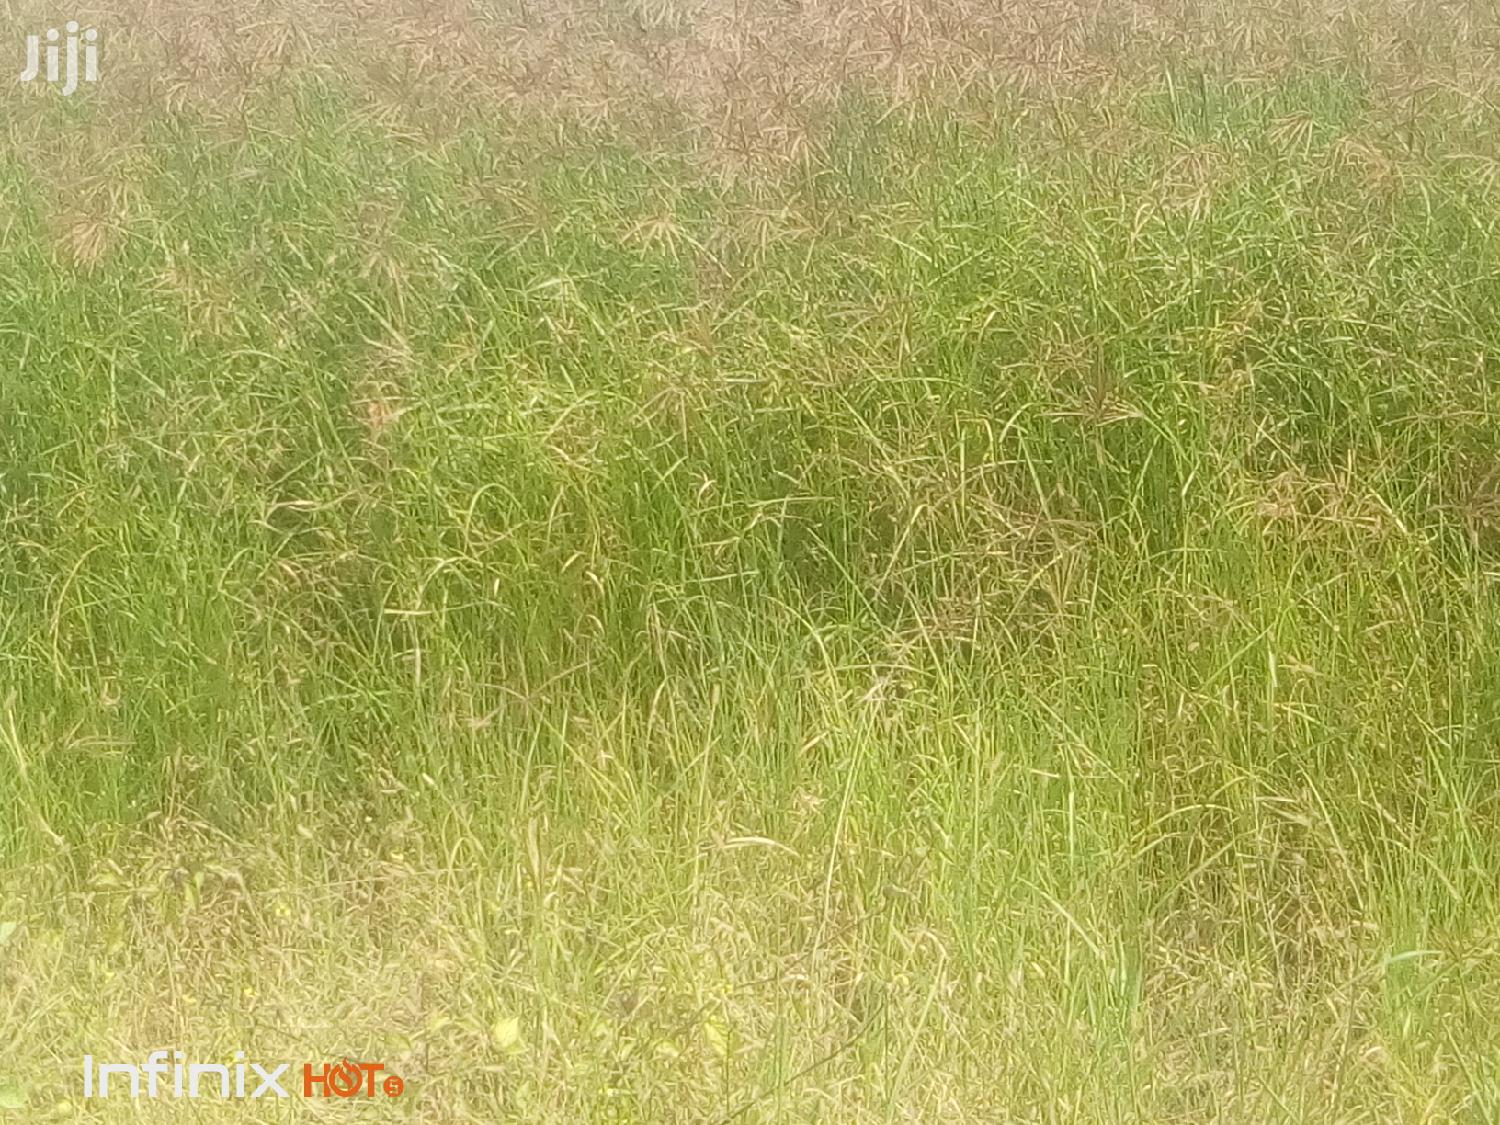 Boma Rhodes Hay Grass Seeds